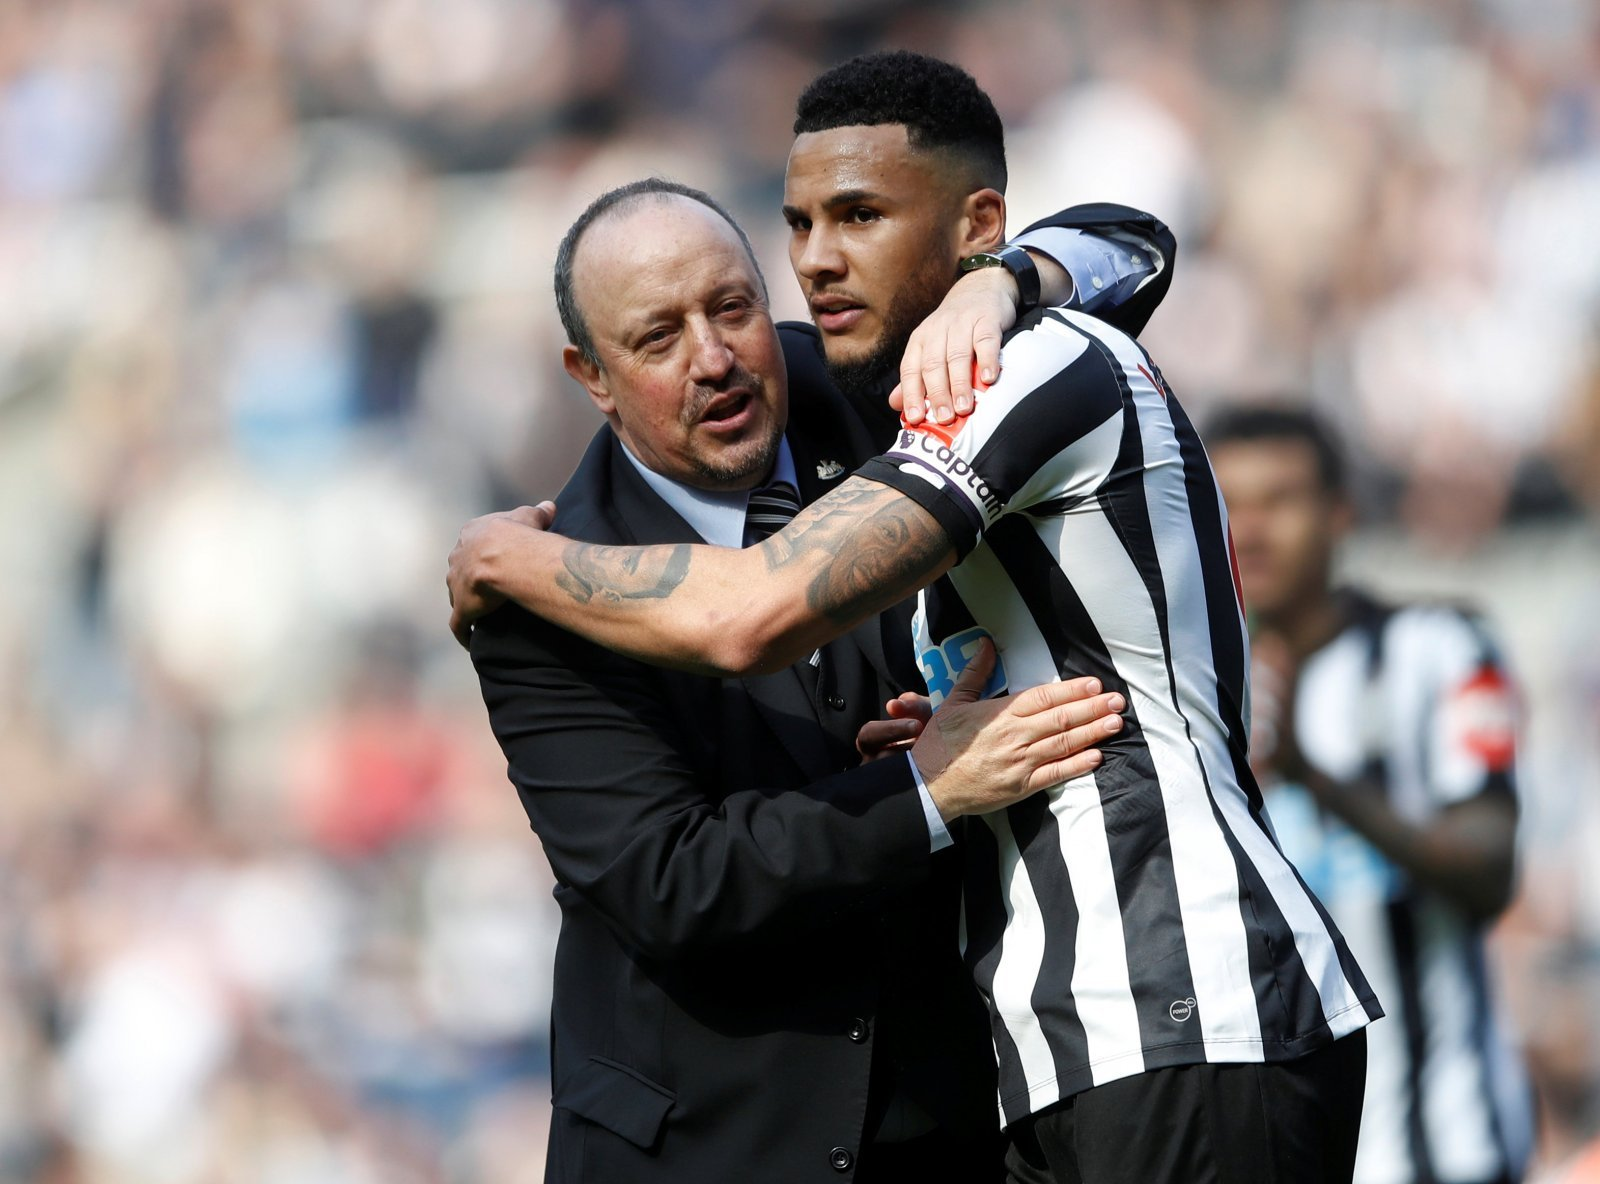 Jamaal Lascelles in a race to be fit for Crystal Palace encounter